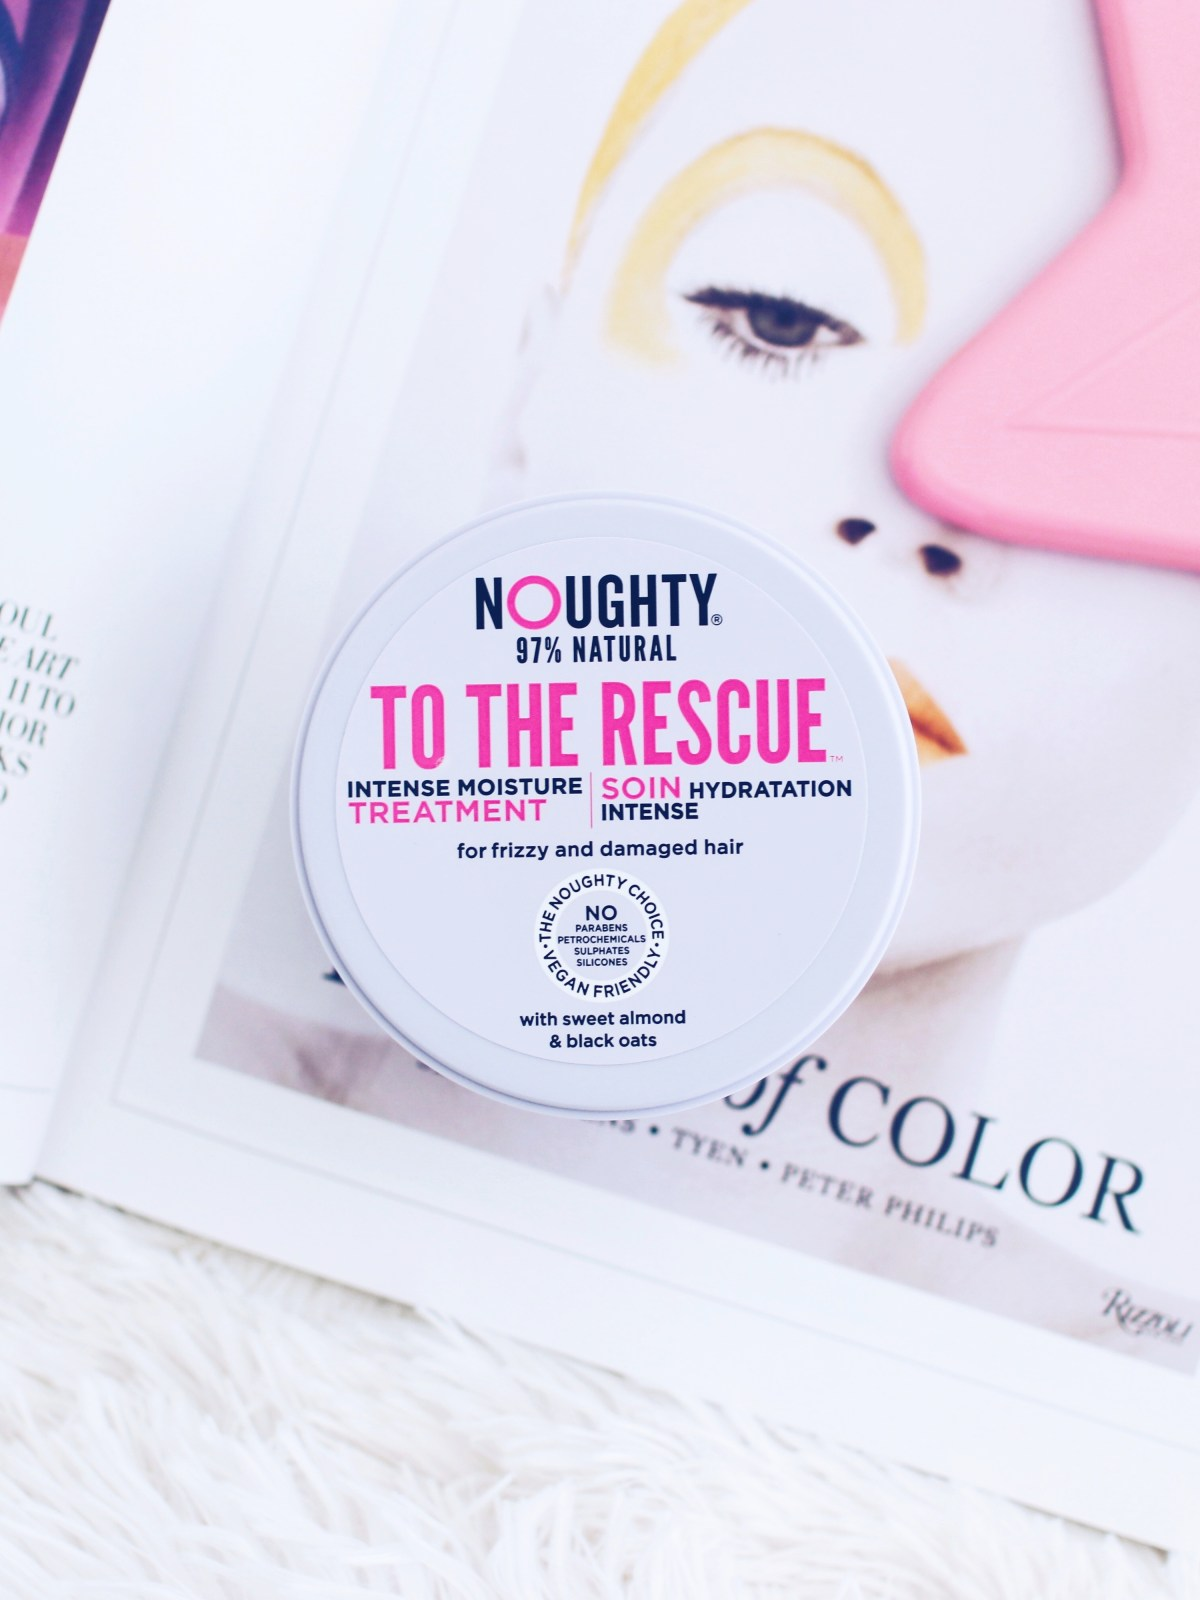 Noughty To The Rescue Hair Mask Review - The LDN Diaries